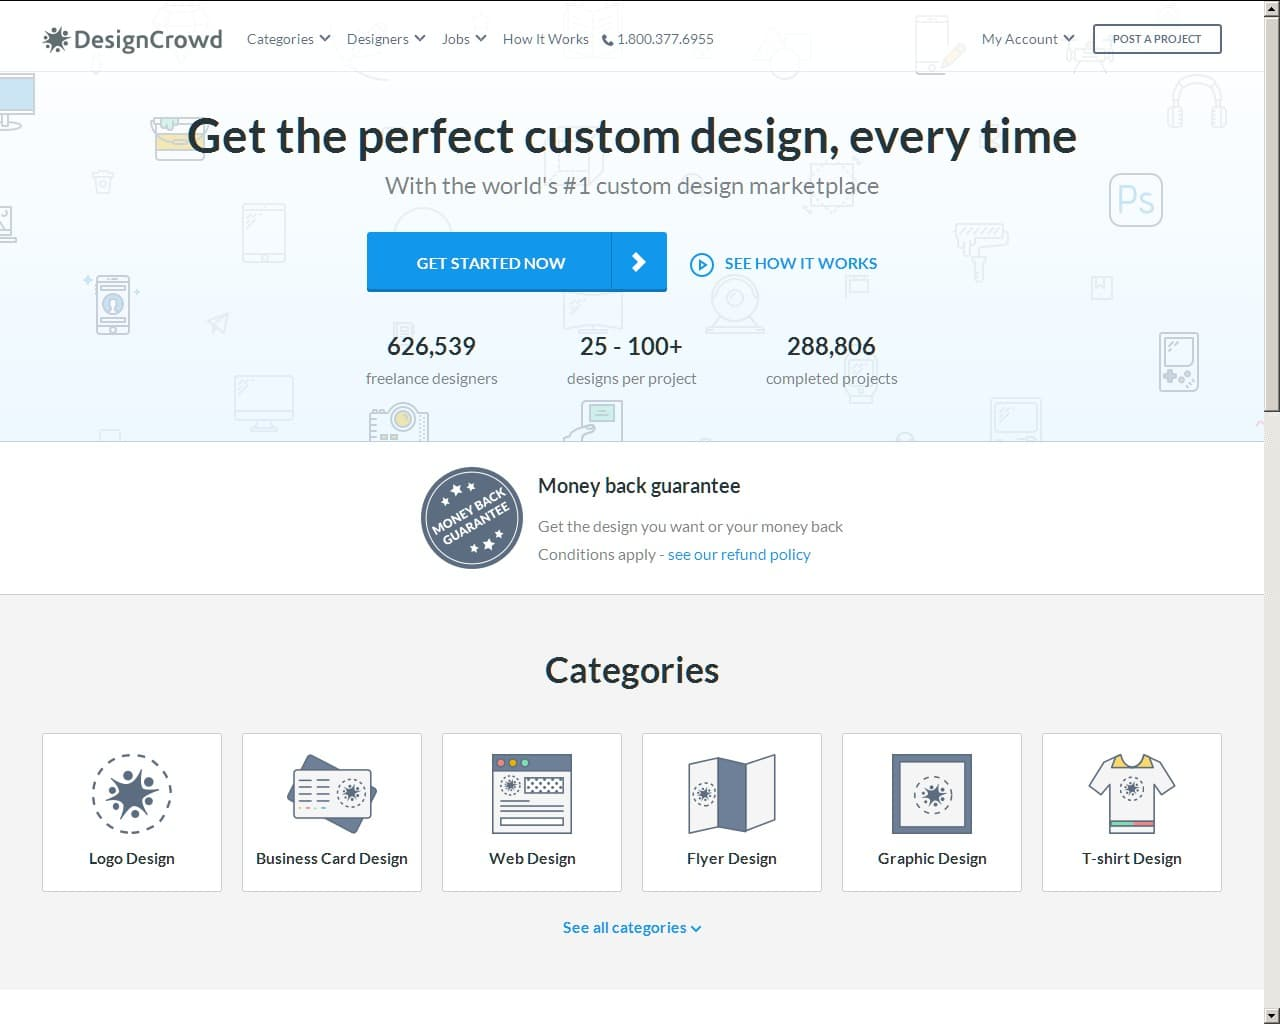 DesignCrowd's user interface